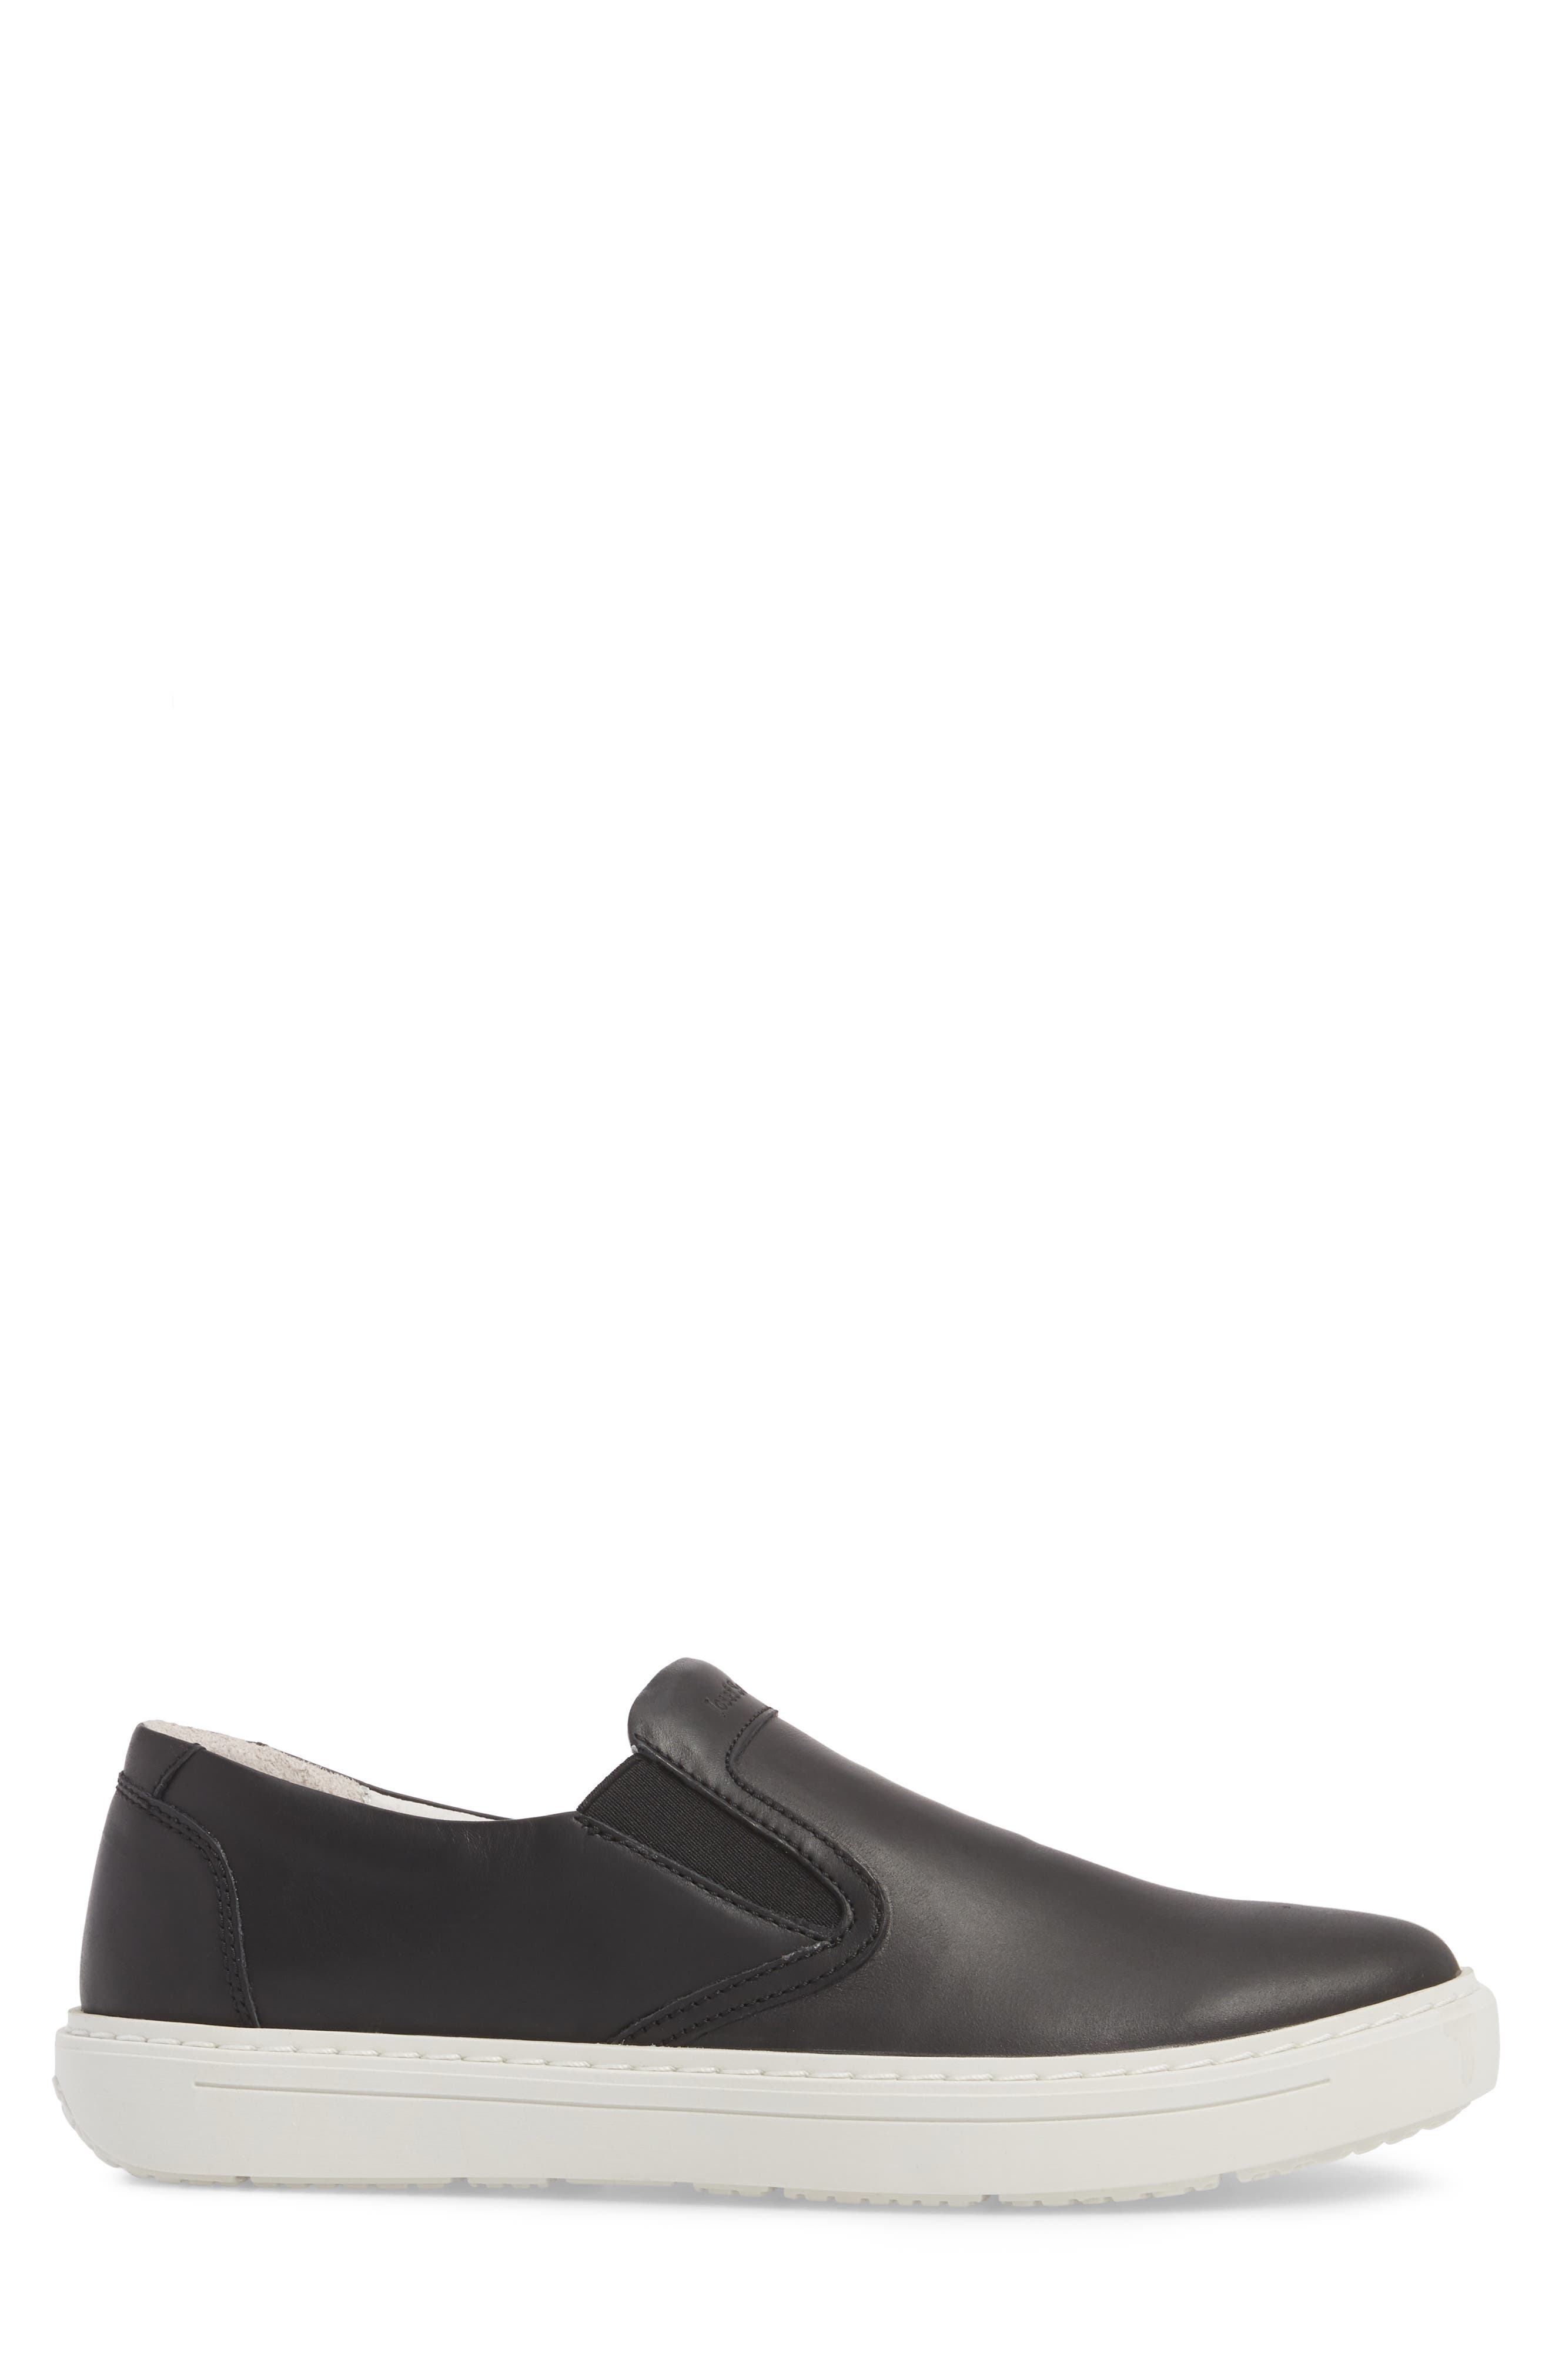 Quentin 15 Slip-On Sneaker,                             Alternate thumbnail 3, color,                             Black Leather